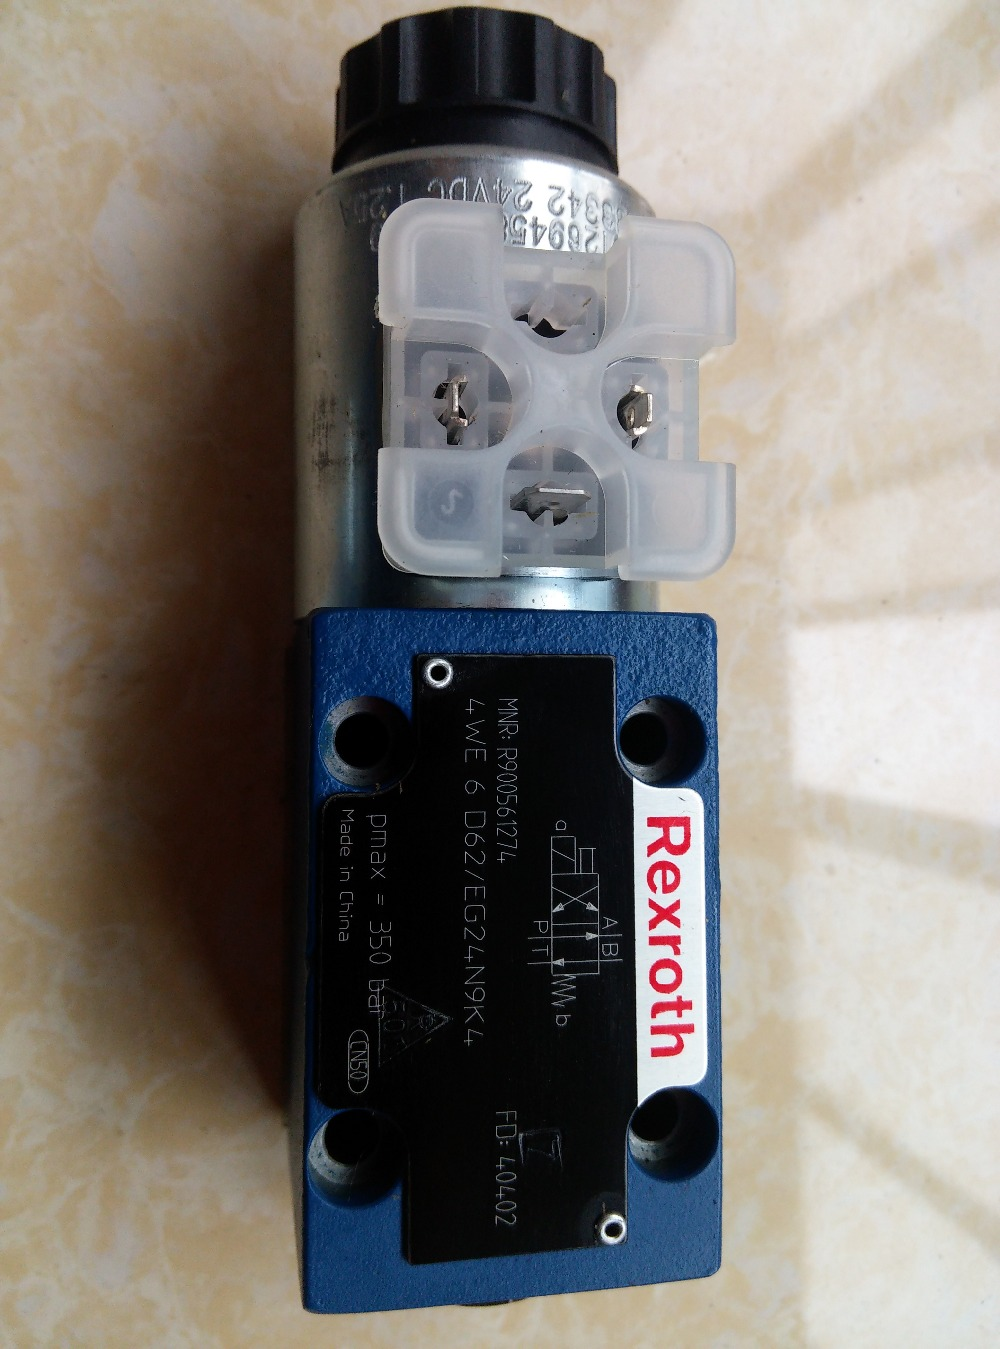 REXROTH Hydraulic valve 4WE6D62/EG24N9K4 solenoid directional valve the structure of world demand